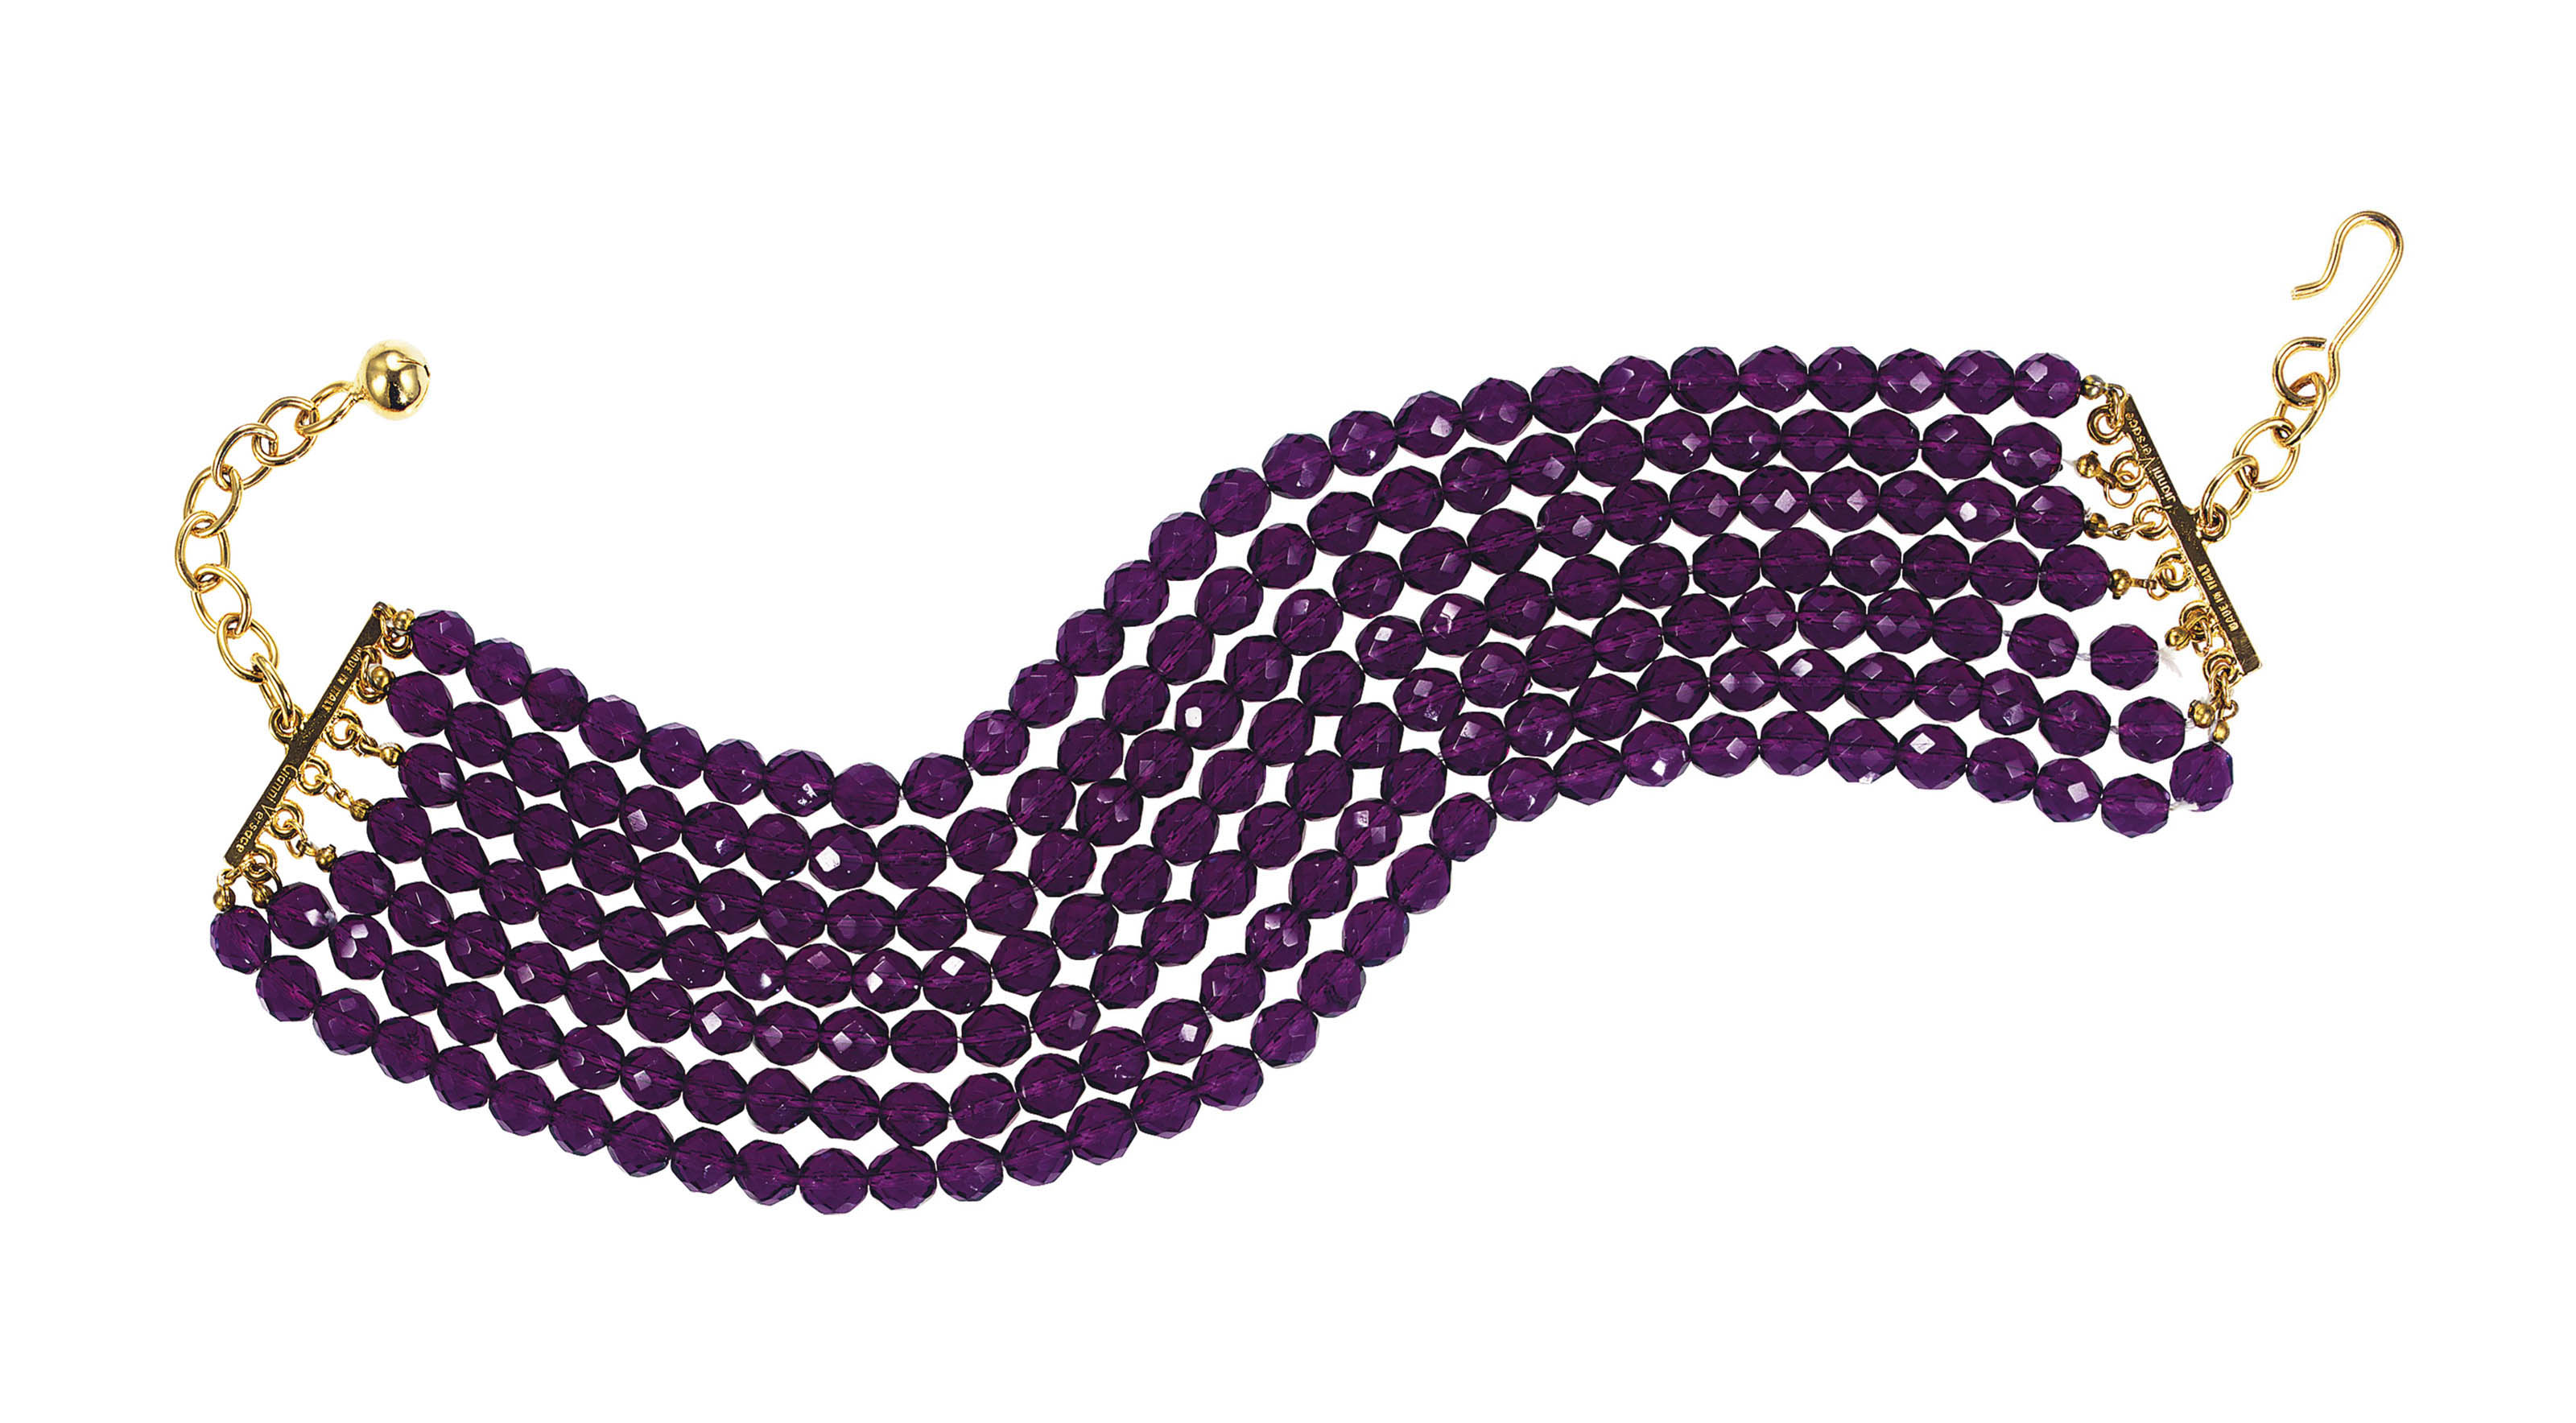 A MULTI-STRAND NECKLACE, BY GIANNI VERSACE